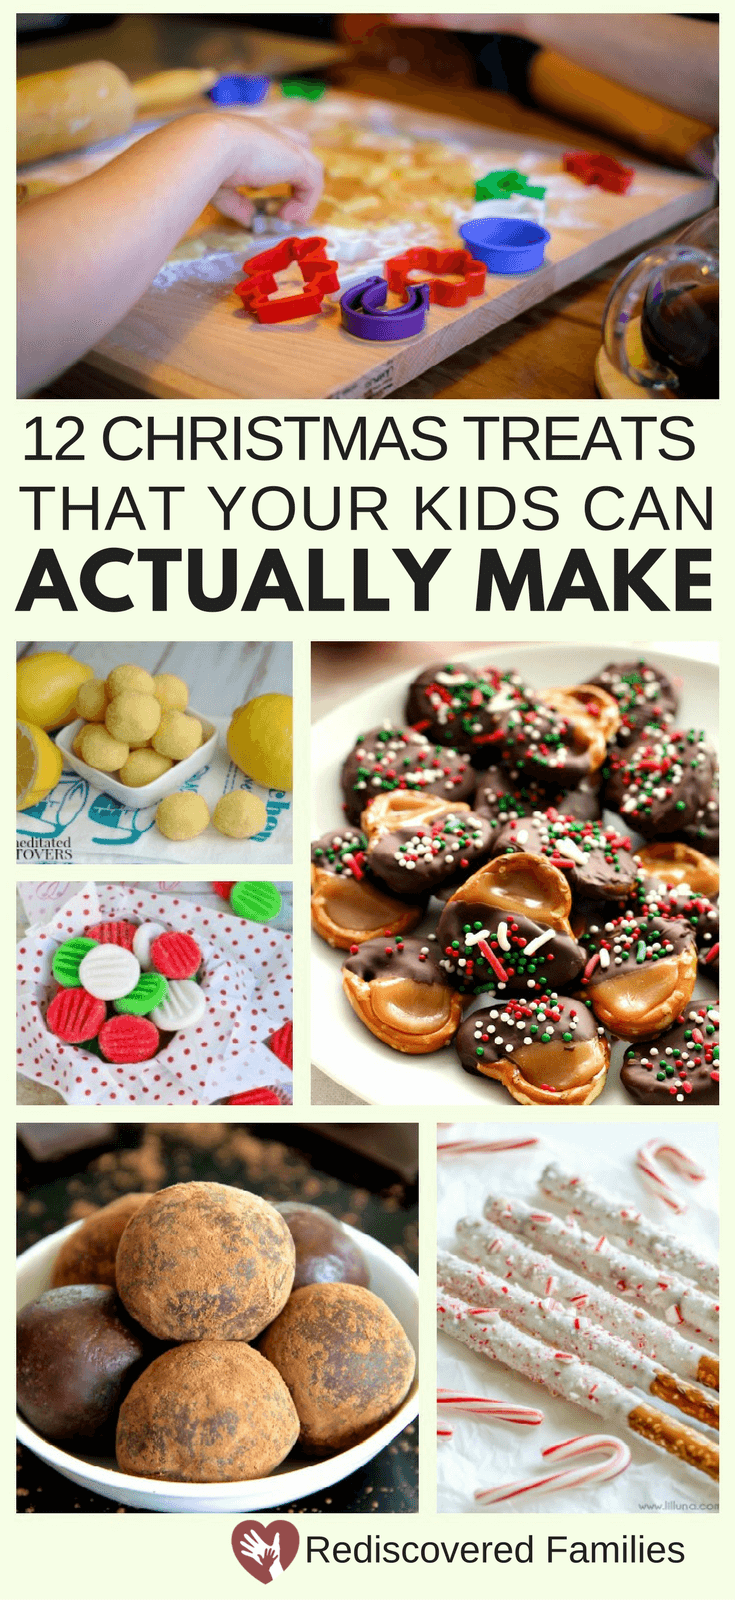 12 Easy Step By Step Natural Eye Make Up Tutorials For: 12 Easy Christmas Treats That Your Kids Can Actually Make